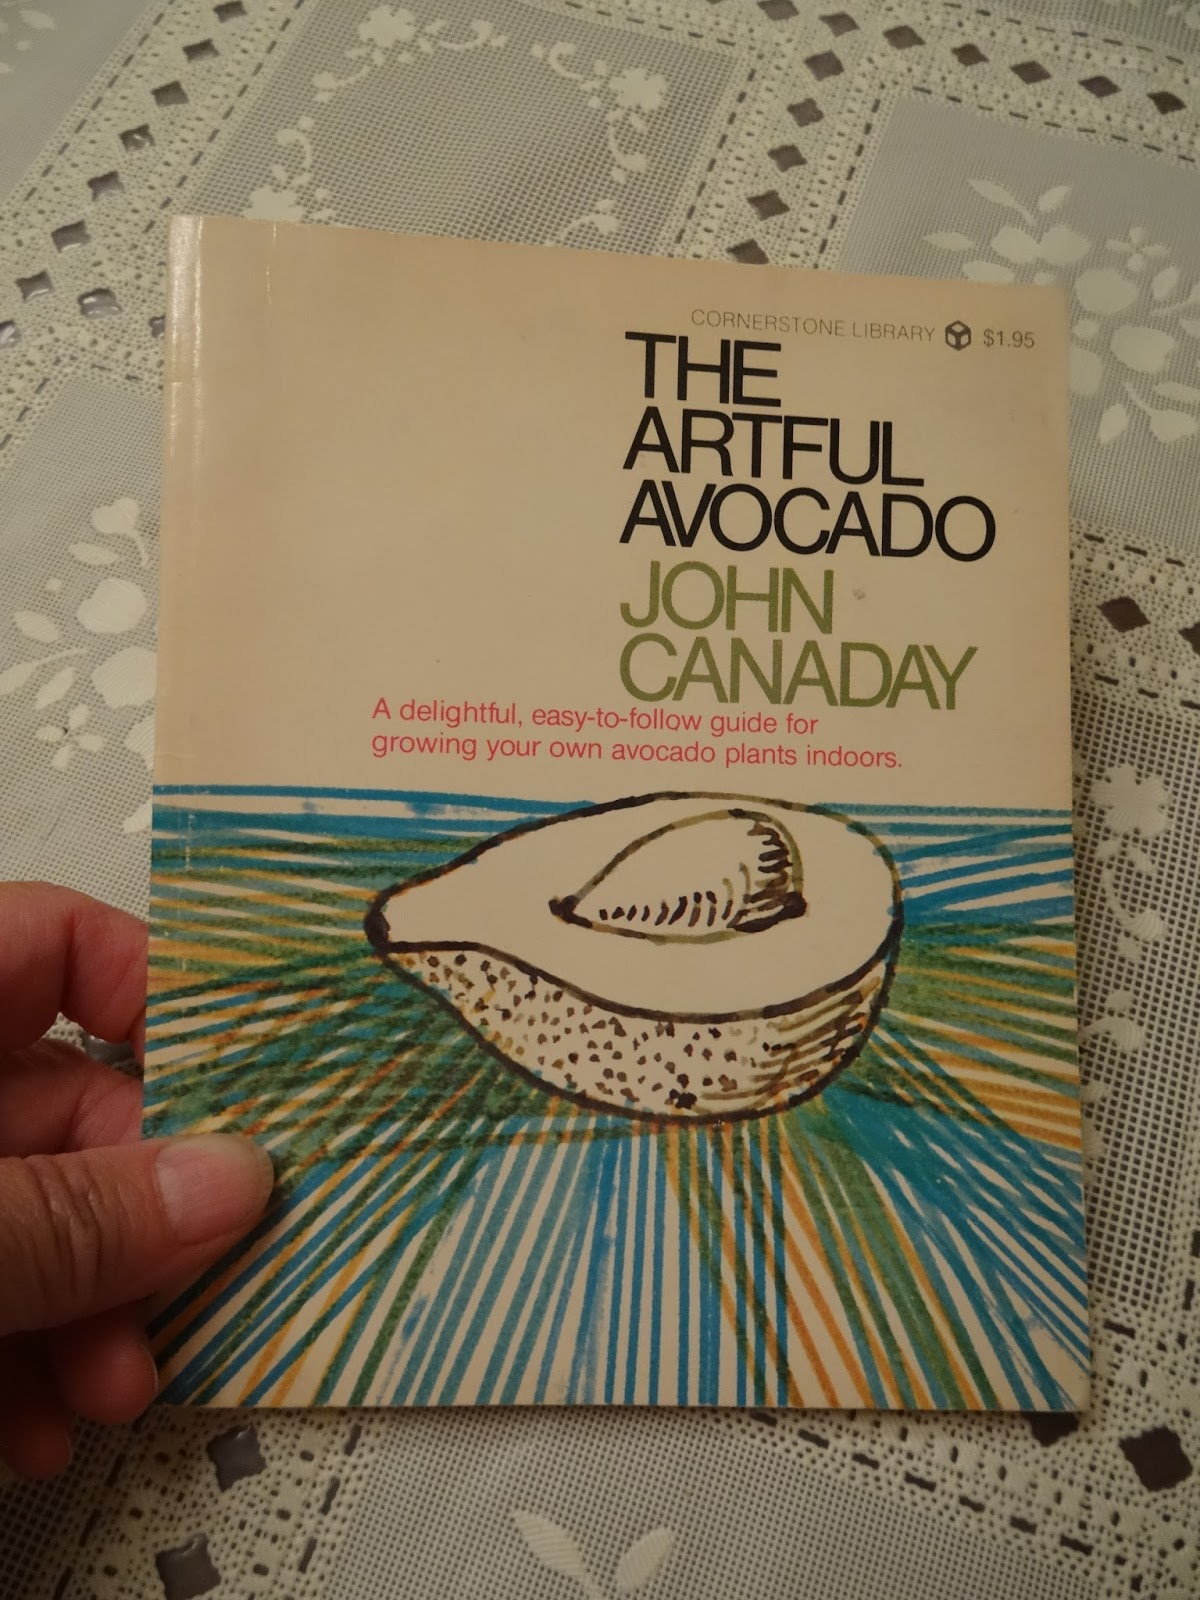 On One Of My Trips To The Store I Became Distracted By This Adorable Little Book Artful Avocado Art Critic Historian Author John Canaday